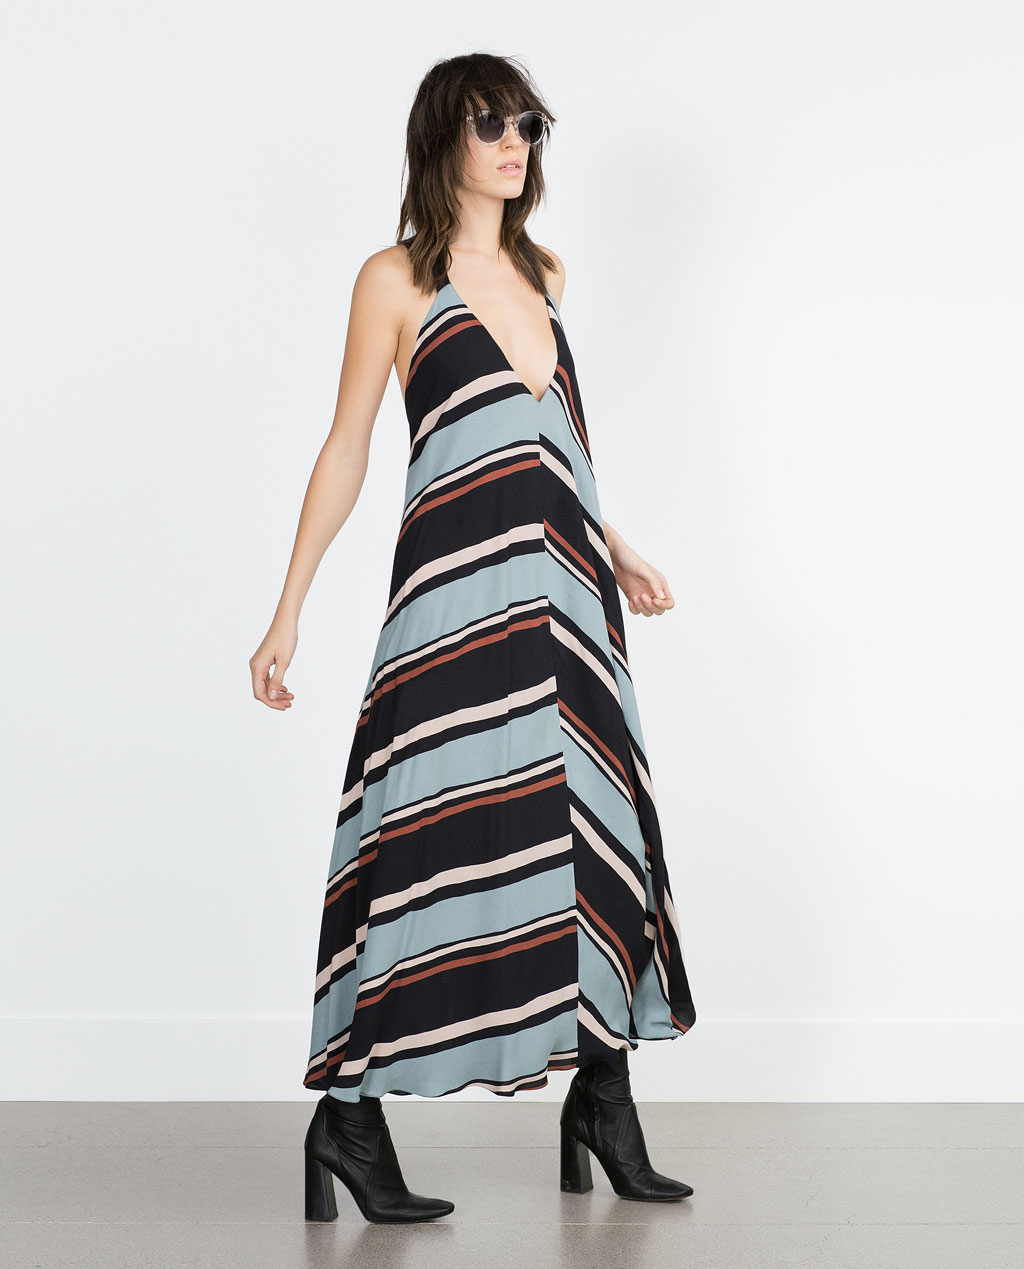 http://www.zara.com/ch/en/woman/dresses/view-all/striped-dress-c733885p2828502.html